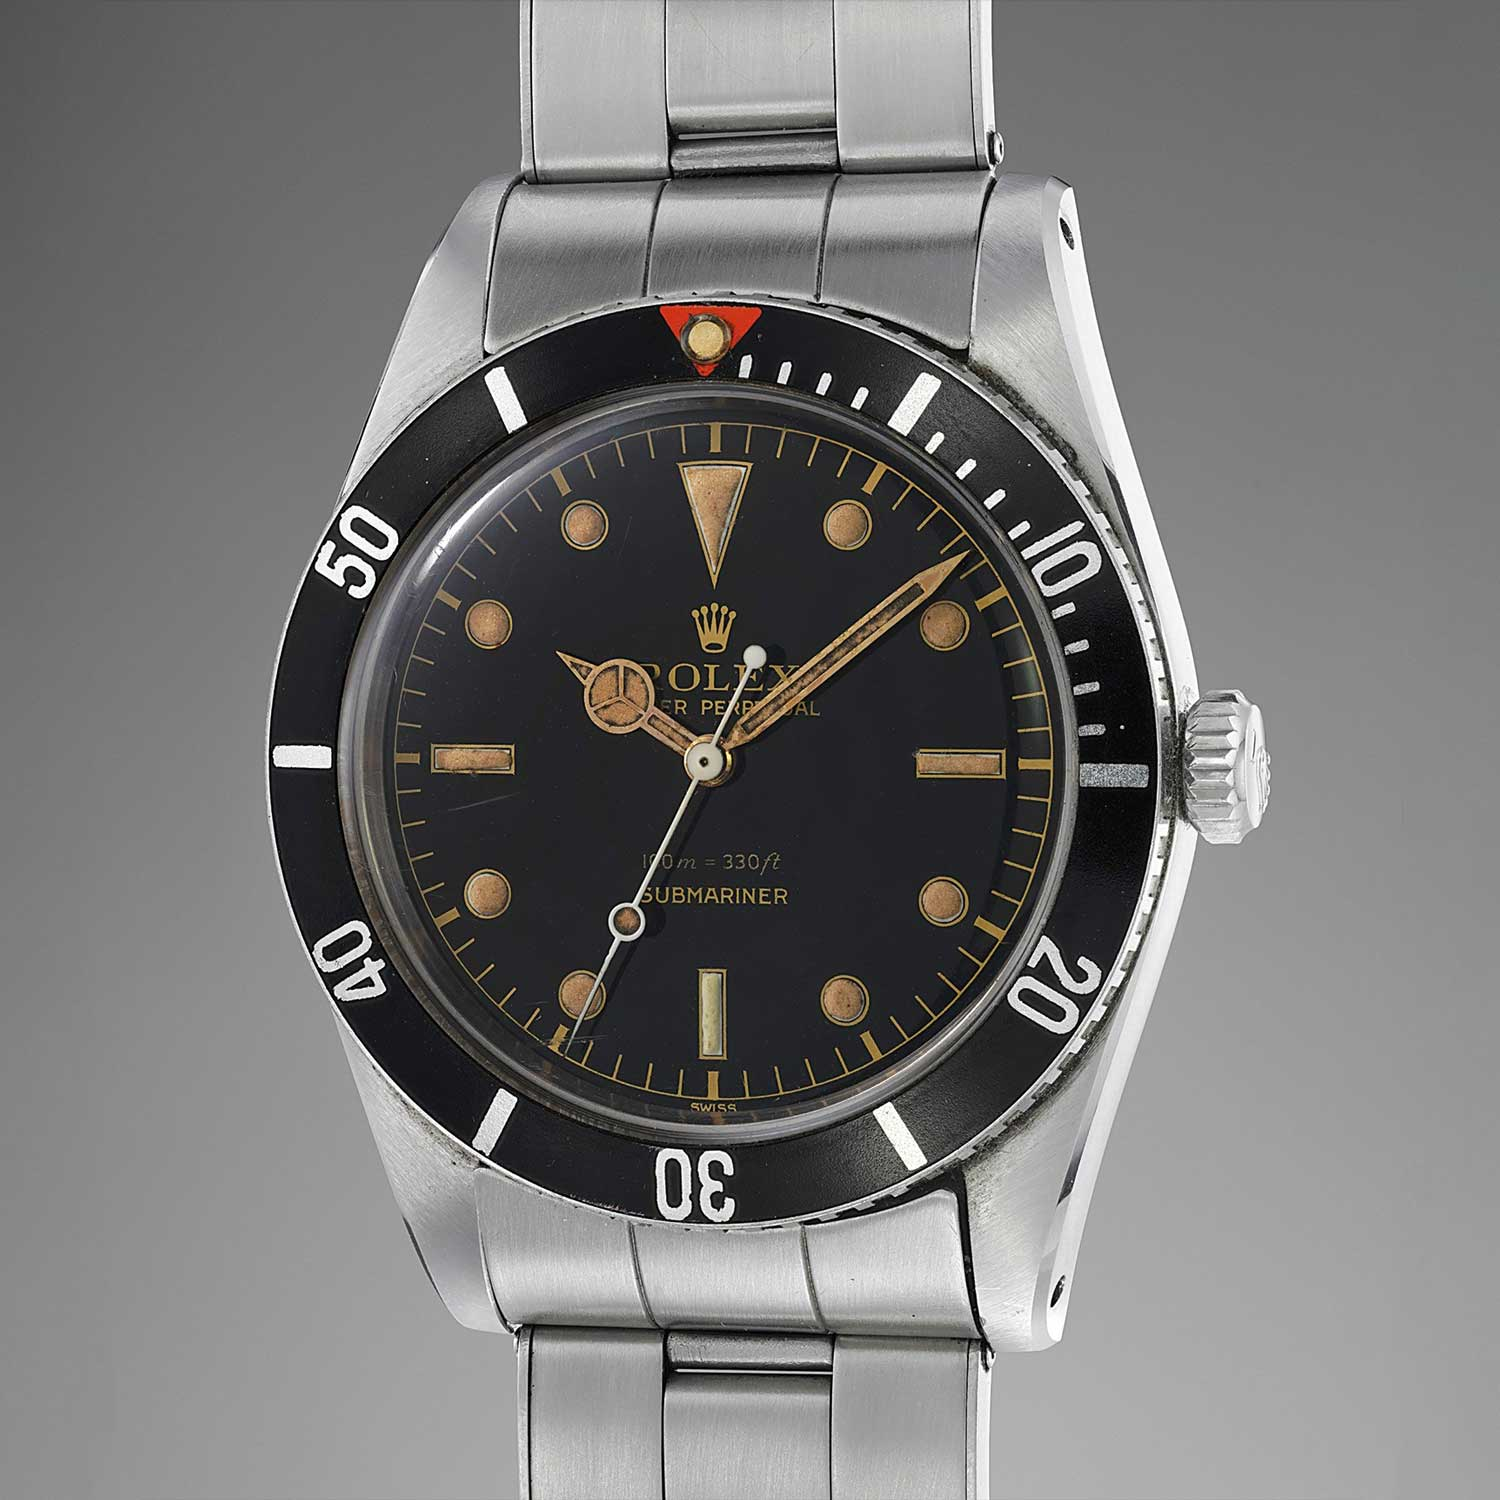 Rolex Submariner ref. 5508 that sold at the Geneva Watch Auction: Nine for CHF 500,000 (Image: phillipswatches.com)